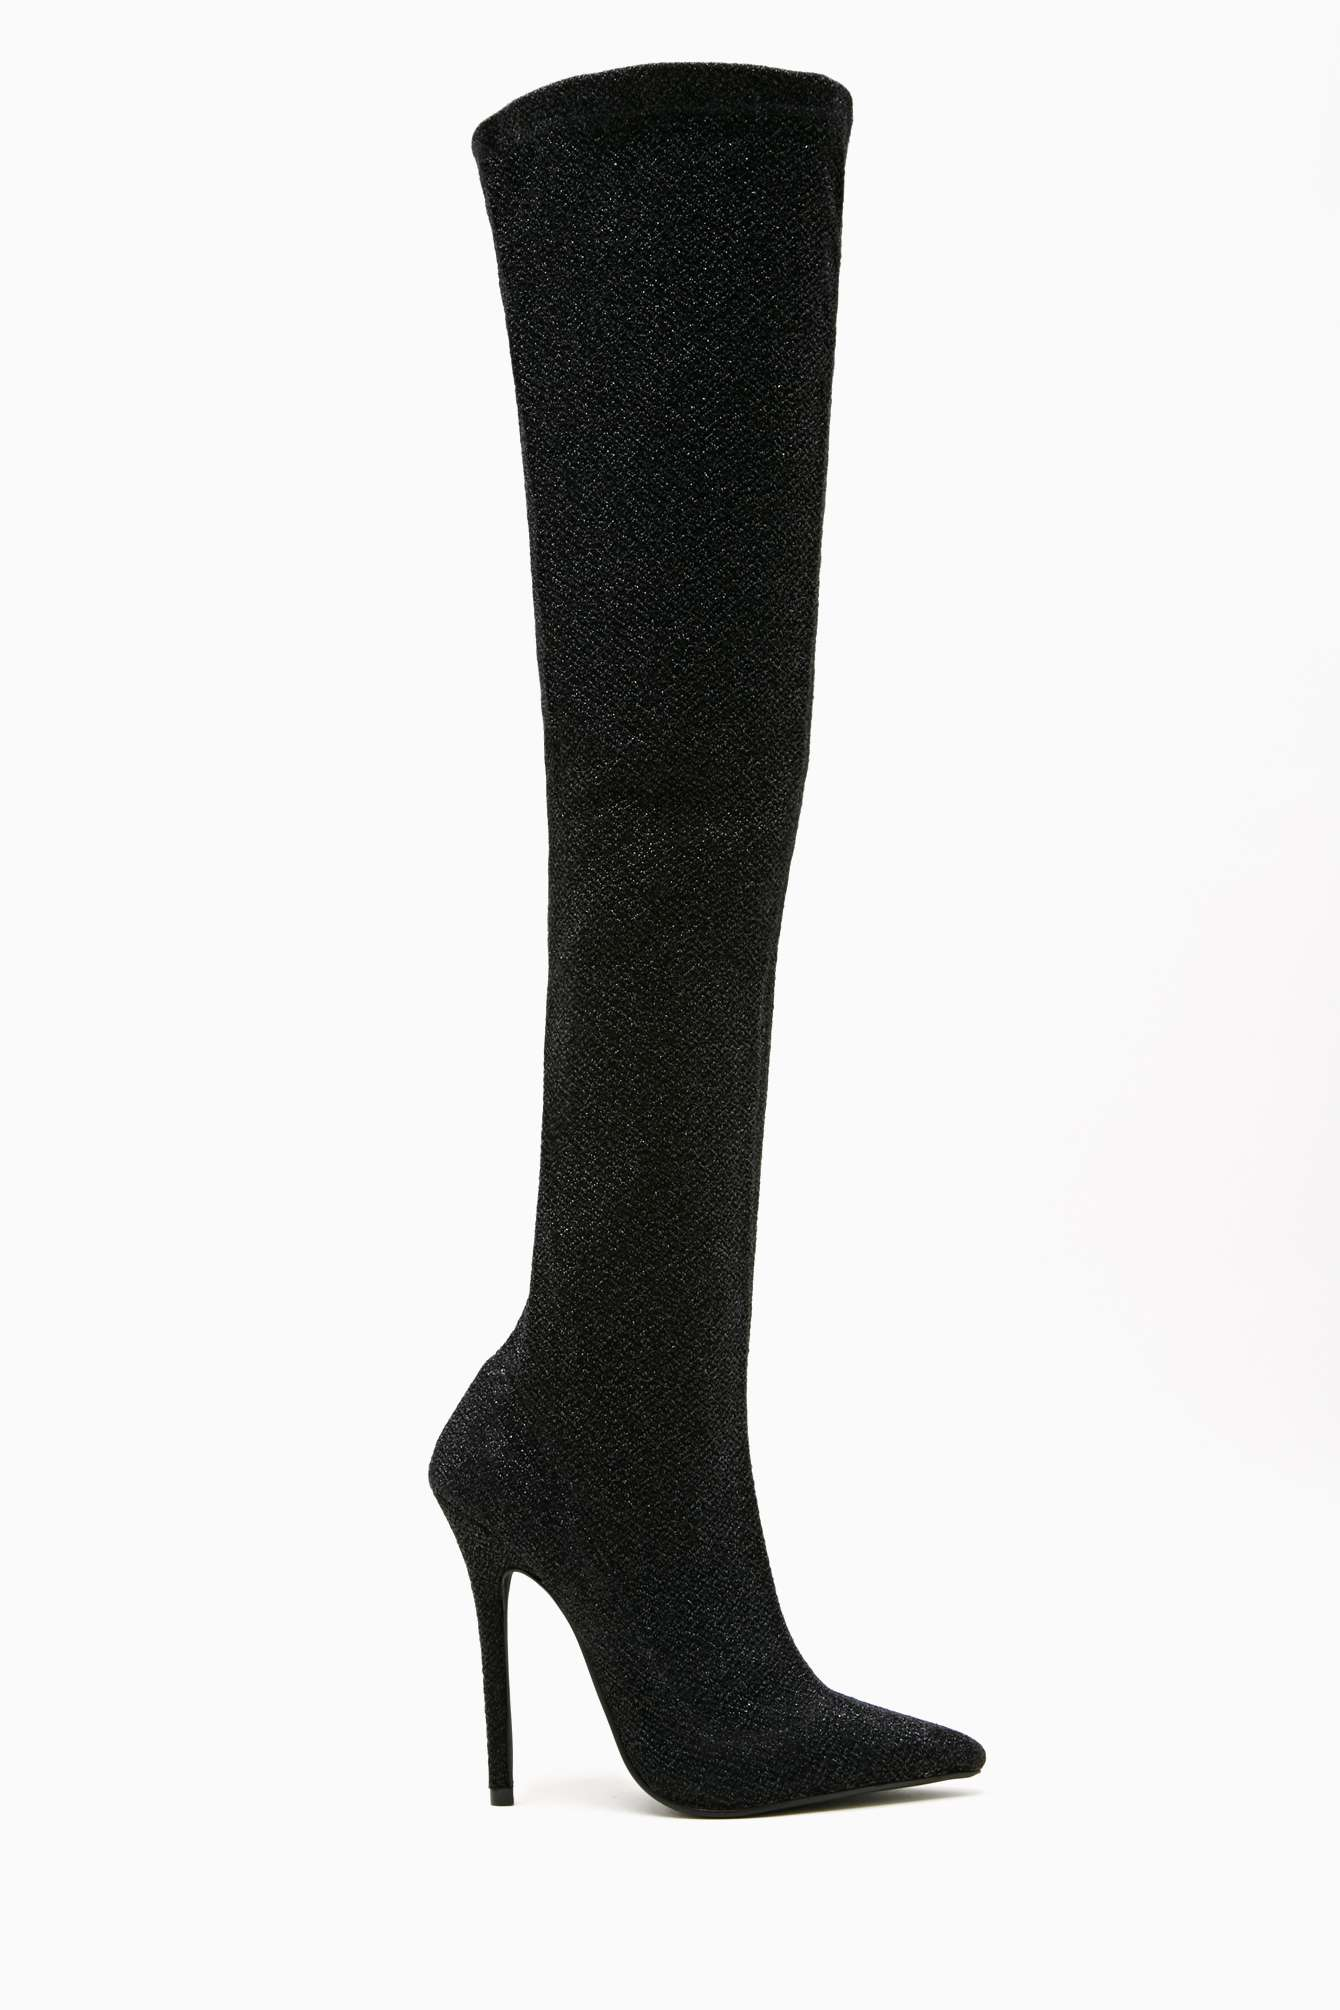 Knee-High Boots Women's Boots: Find the latest styles of Shoes from taradsod.tk Your Online Women's Shoes Store! Get 5% in rewards with Club O! Clarks Women's Faralyn May Waterproof Knee High Boot Black Waterproof Goat Full Grain Leather/Cow Suede. 23 Reviews. SALE. Quick View.